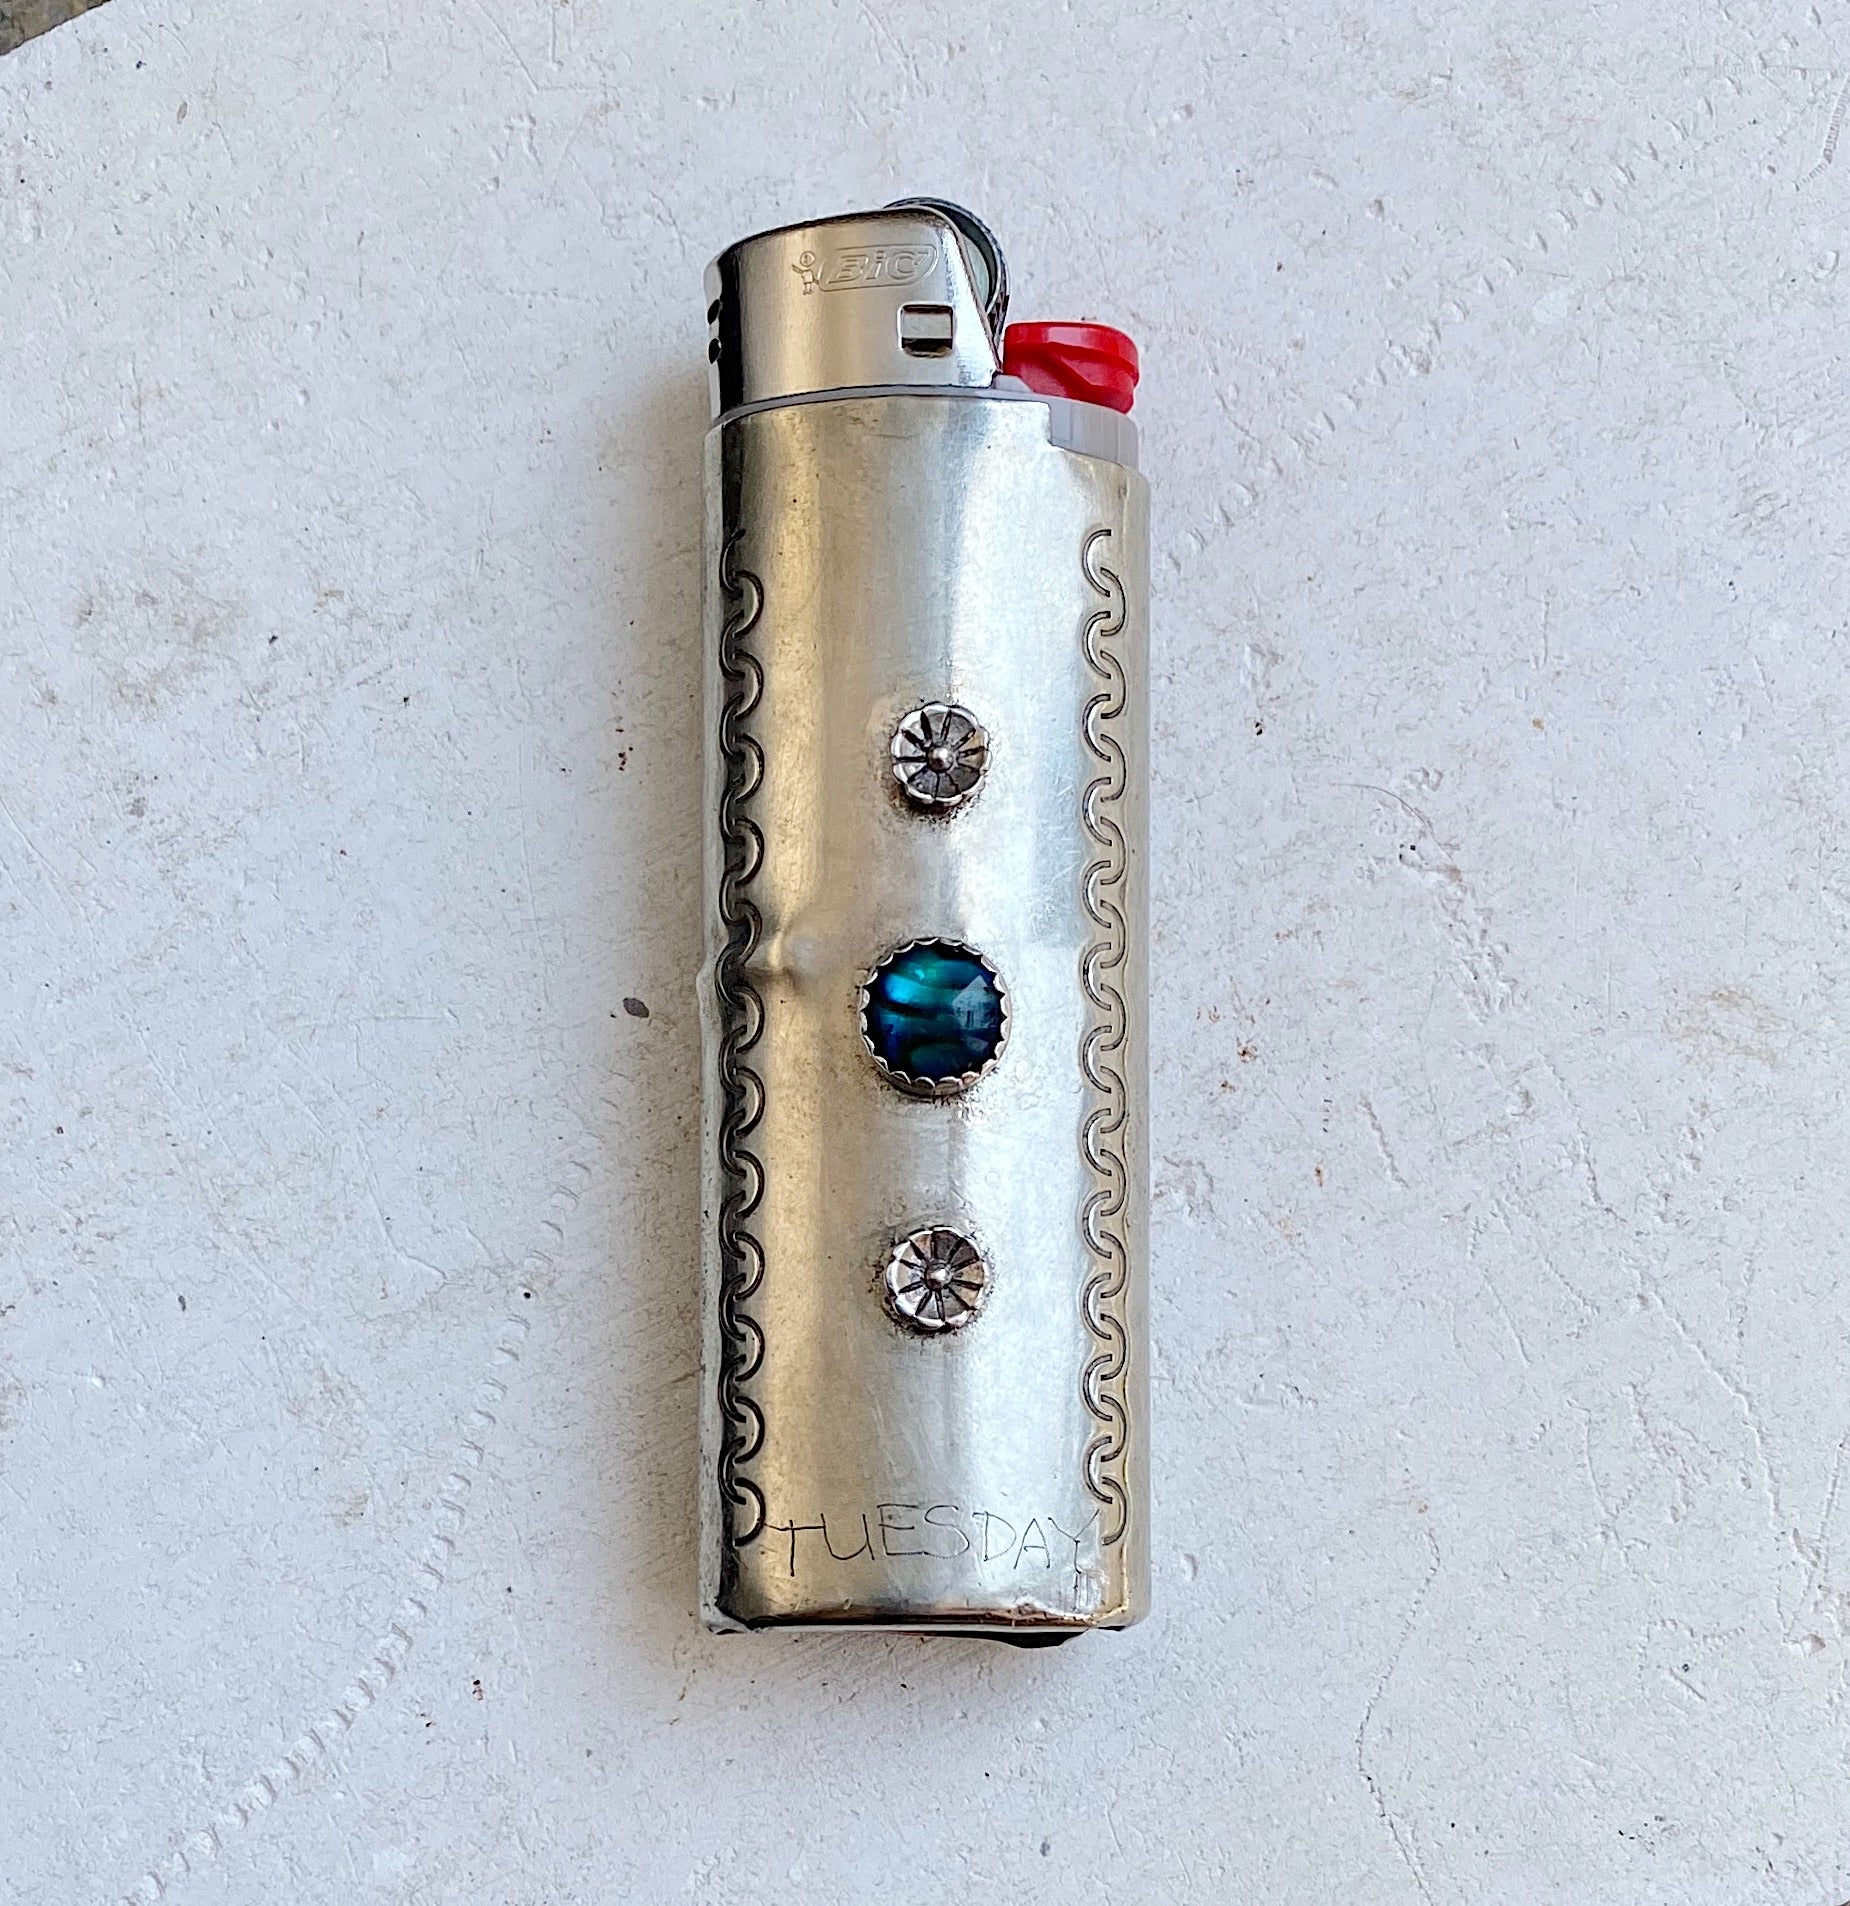 Vintage Nickel Silver Lighter Sleeve with Blue Tiger Eye